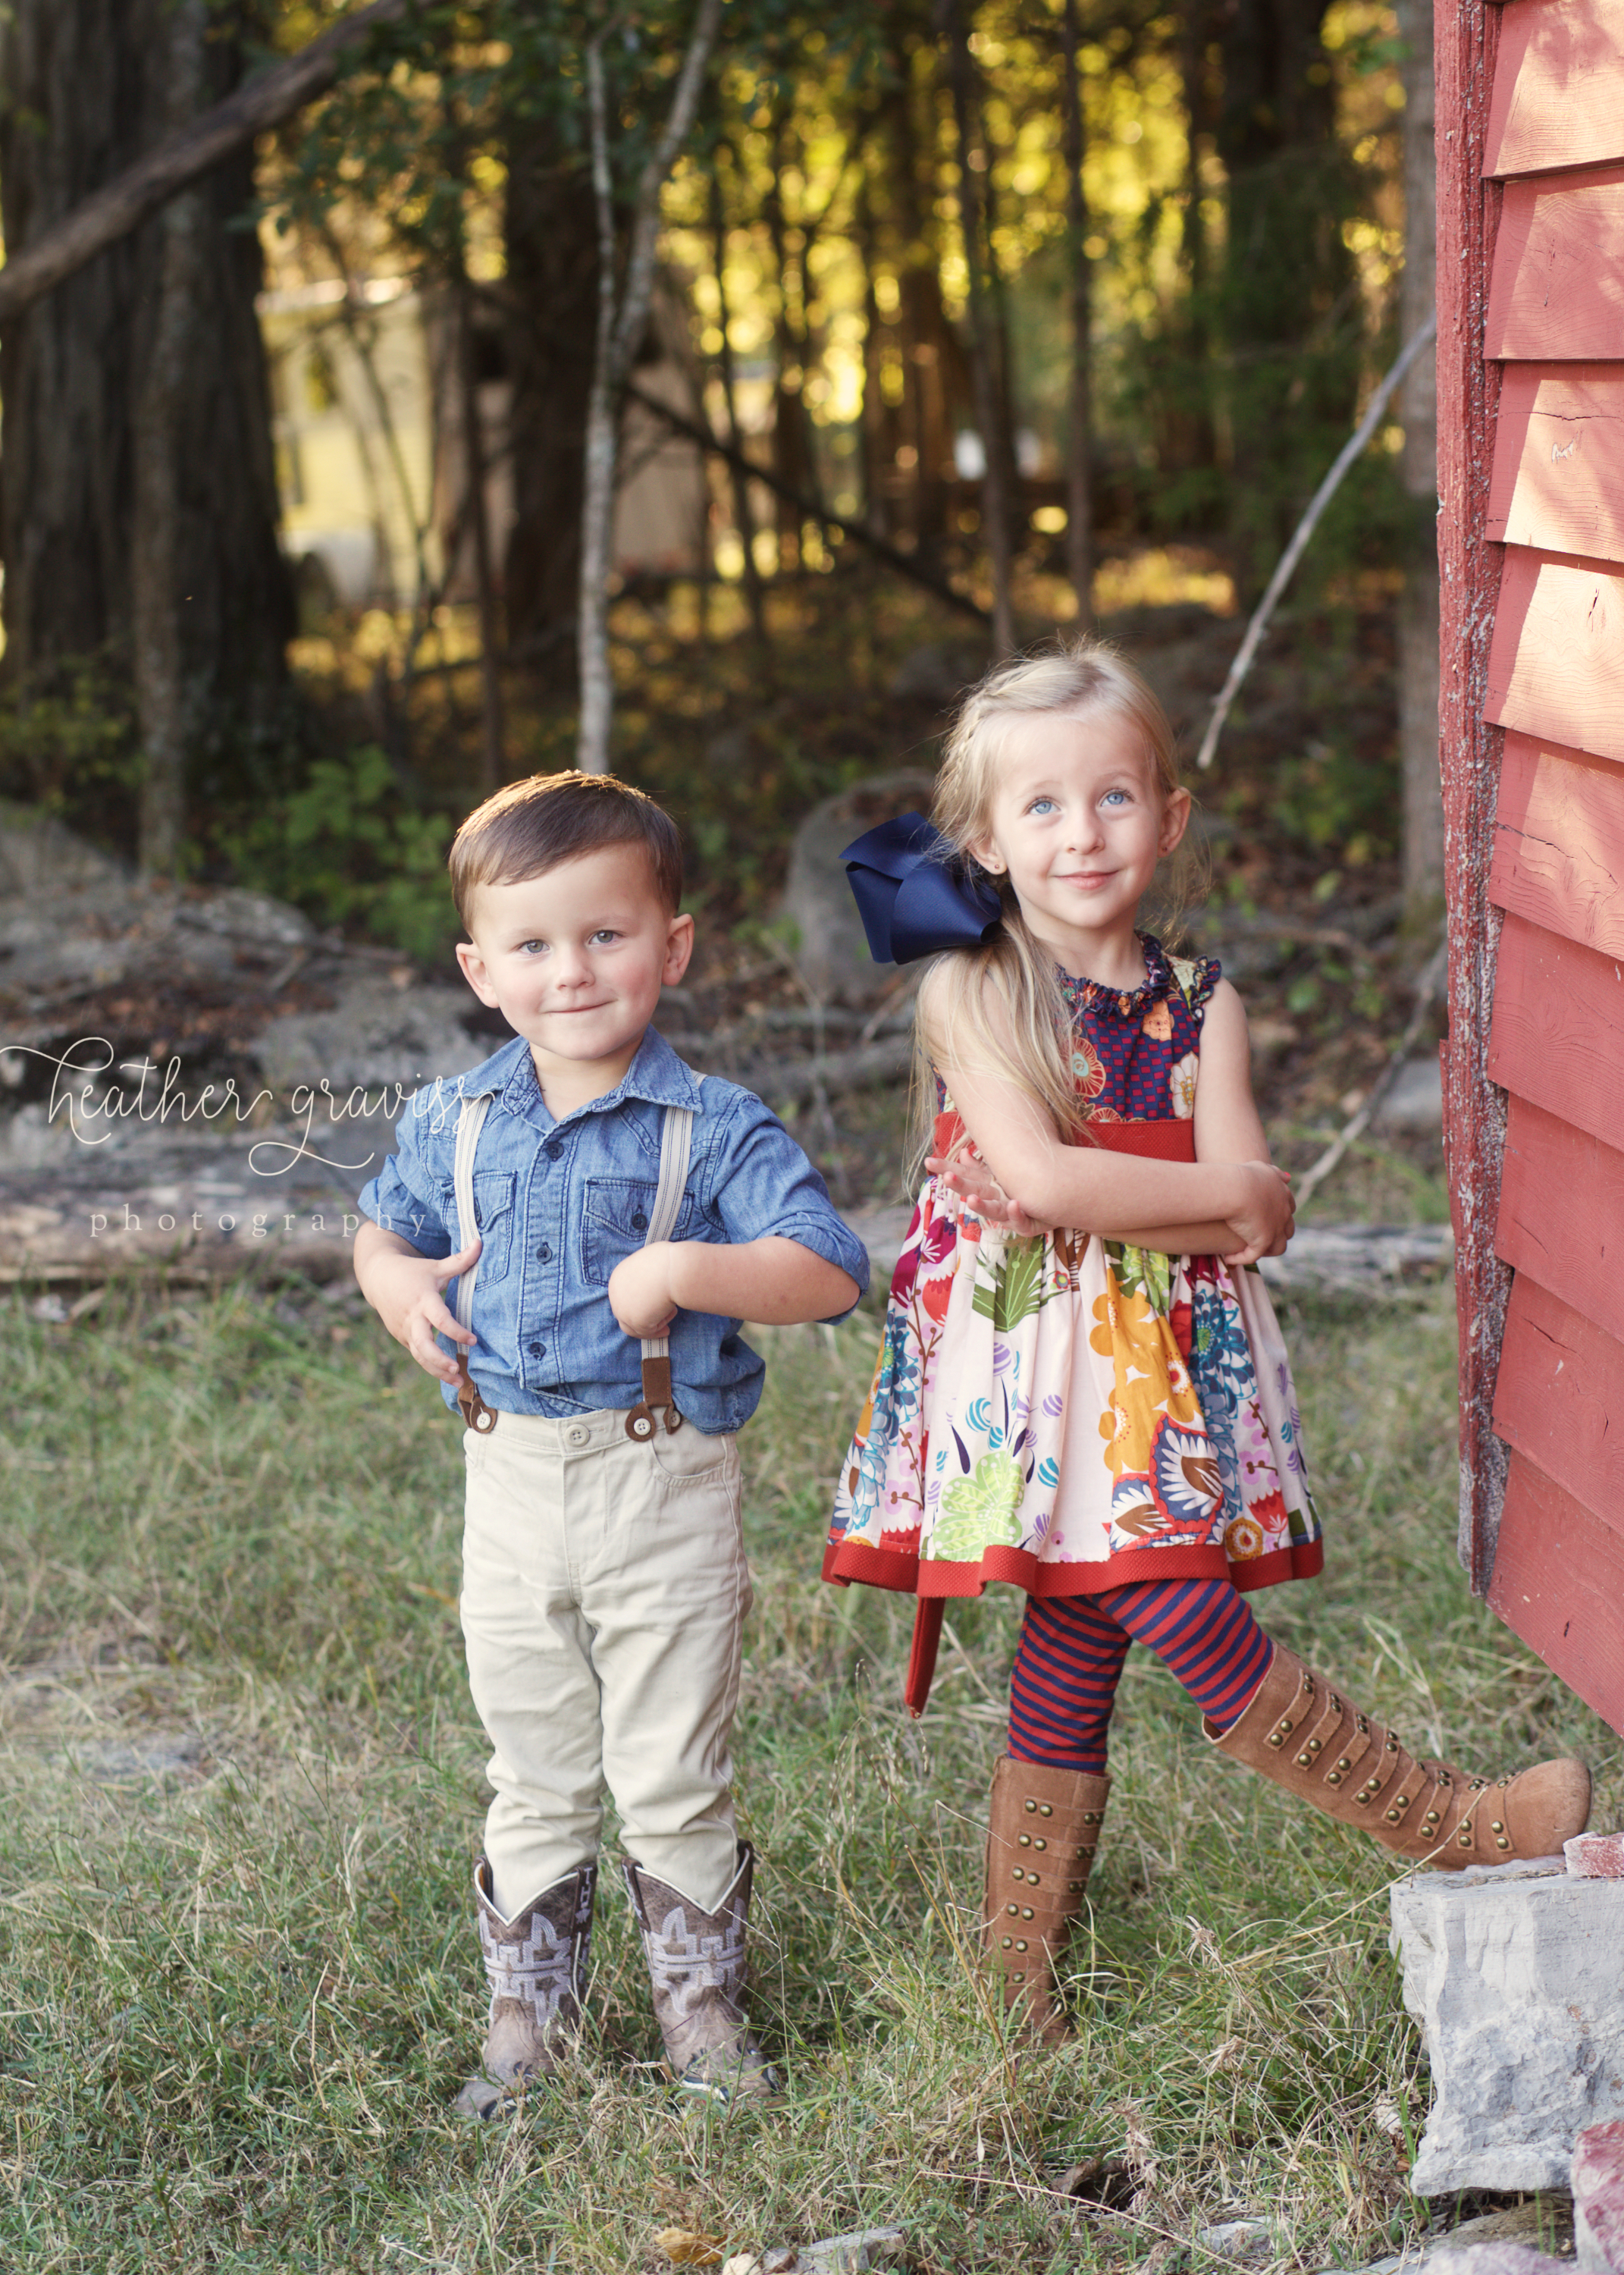 nashville middle tn family photographer 256.jpg